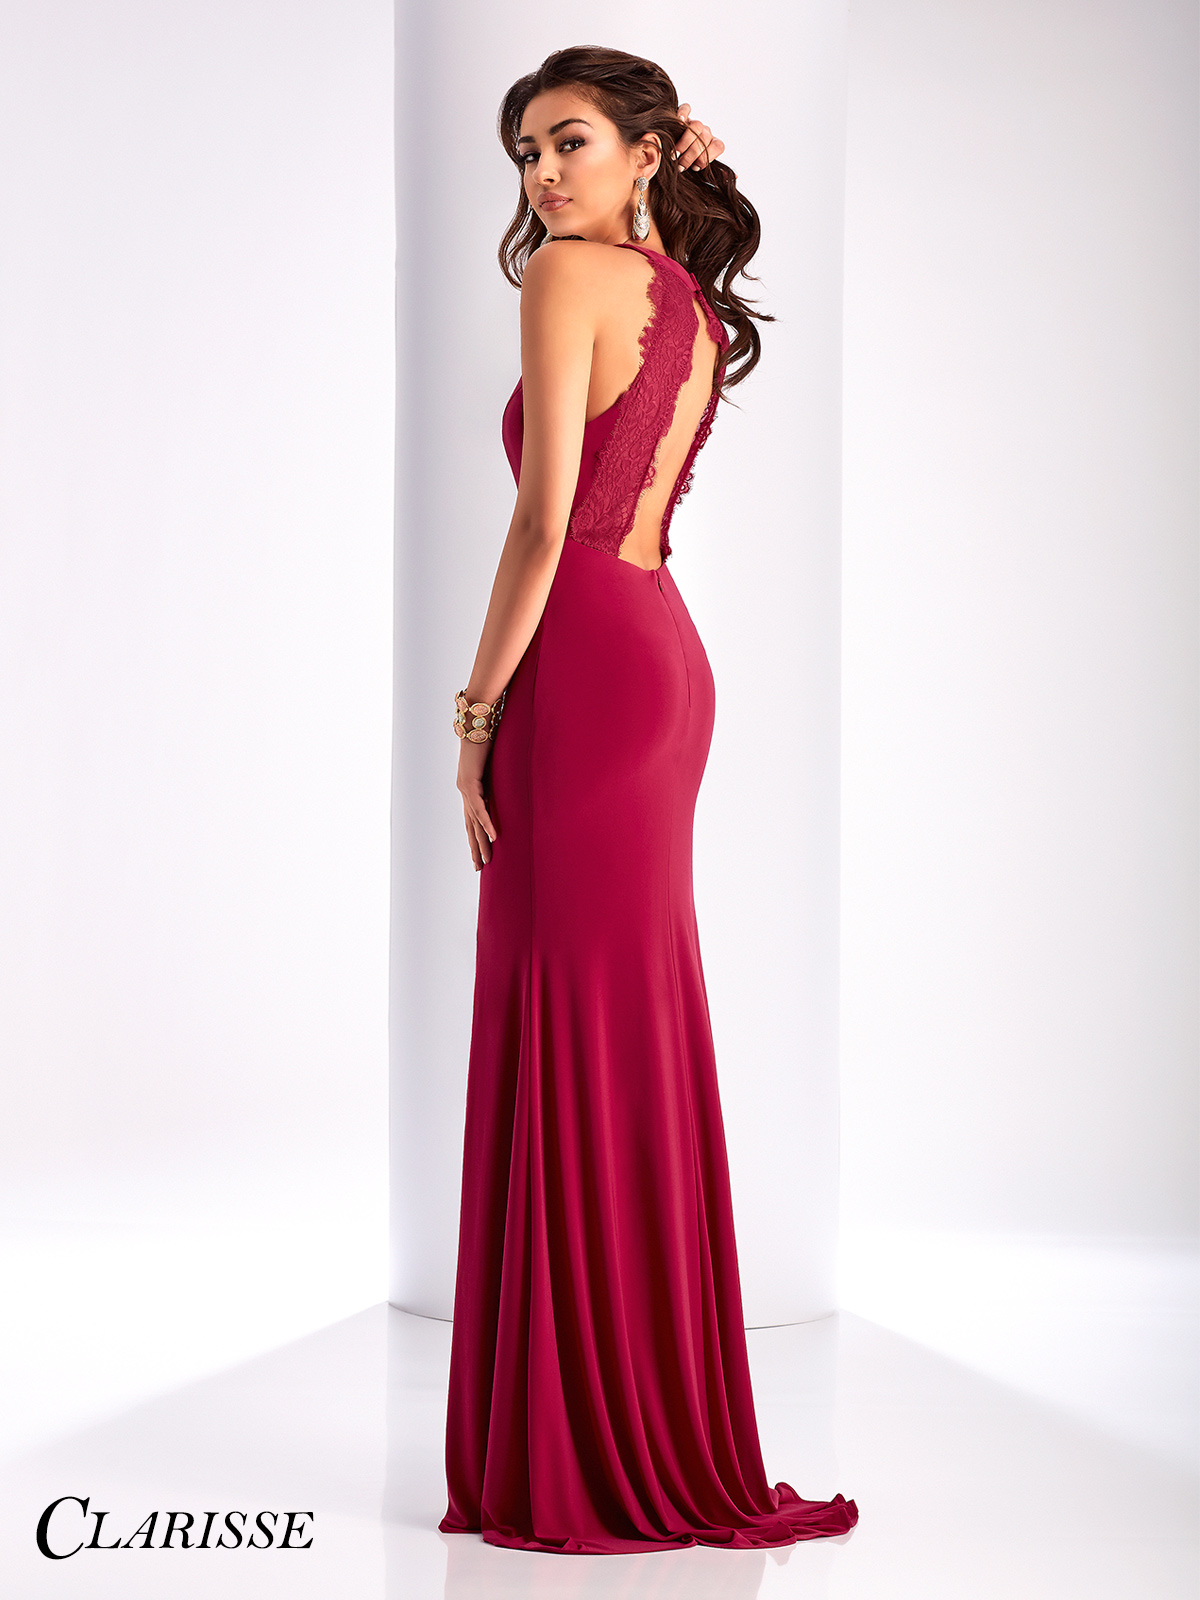 Clarisse Prom Dress 3048 | Promgirl.net